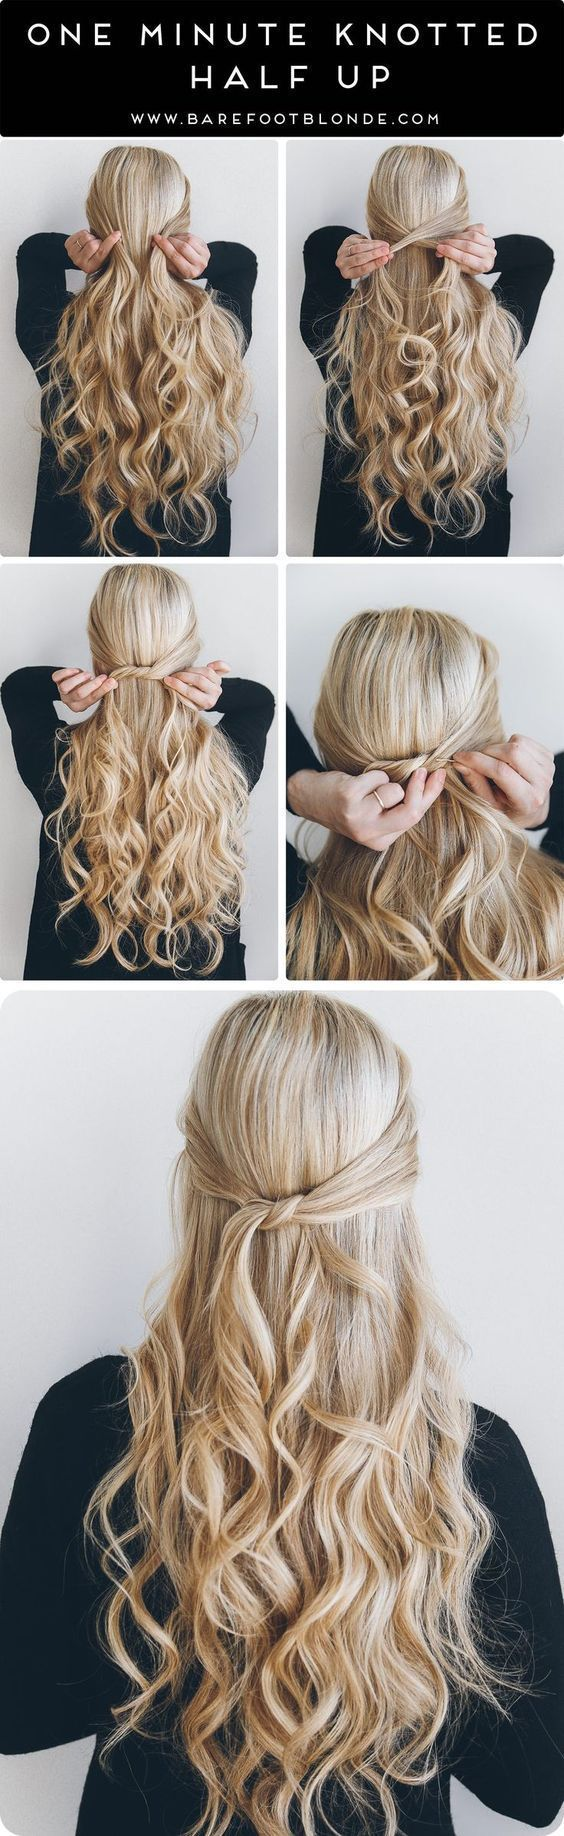 hair style best 25 popular hairstyles ideas on popular 8337